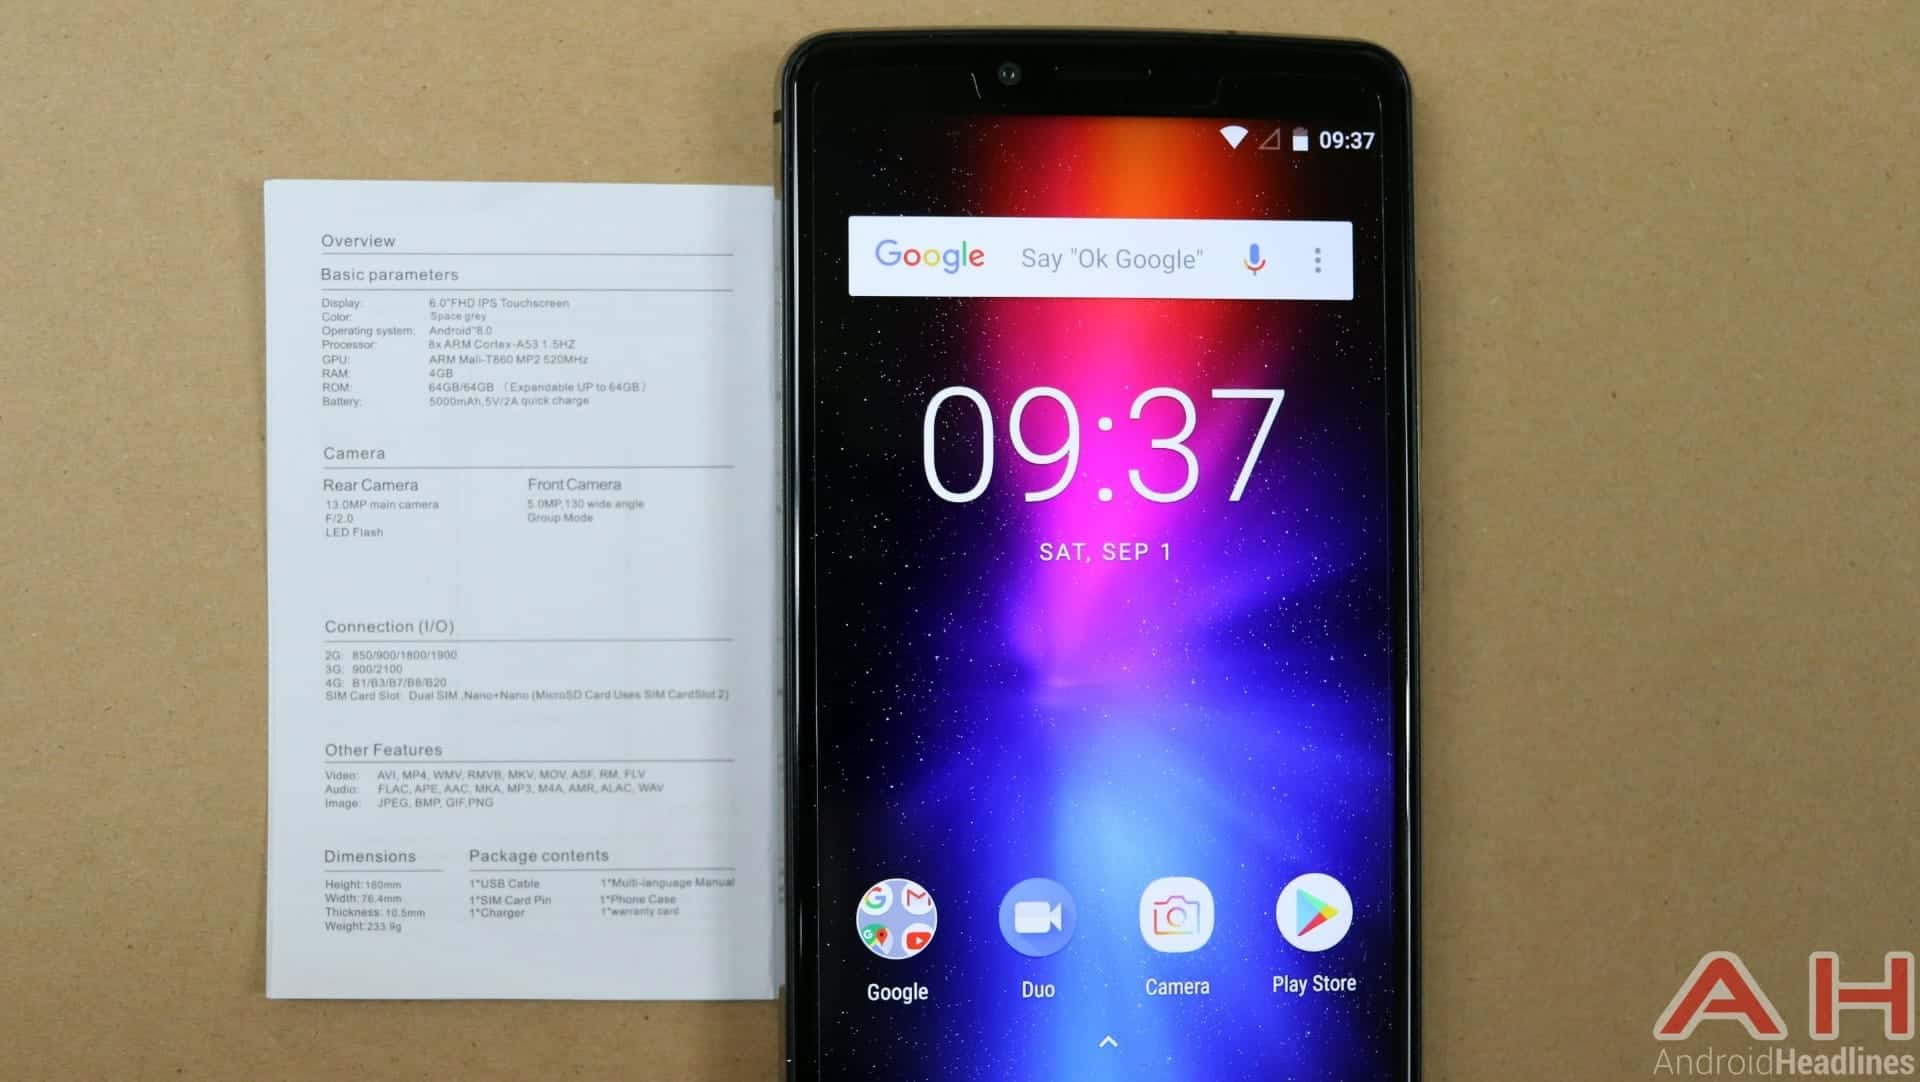 OUKITEL K8 Review – An Imperfect But Respectable Budget Handset